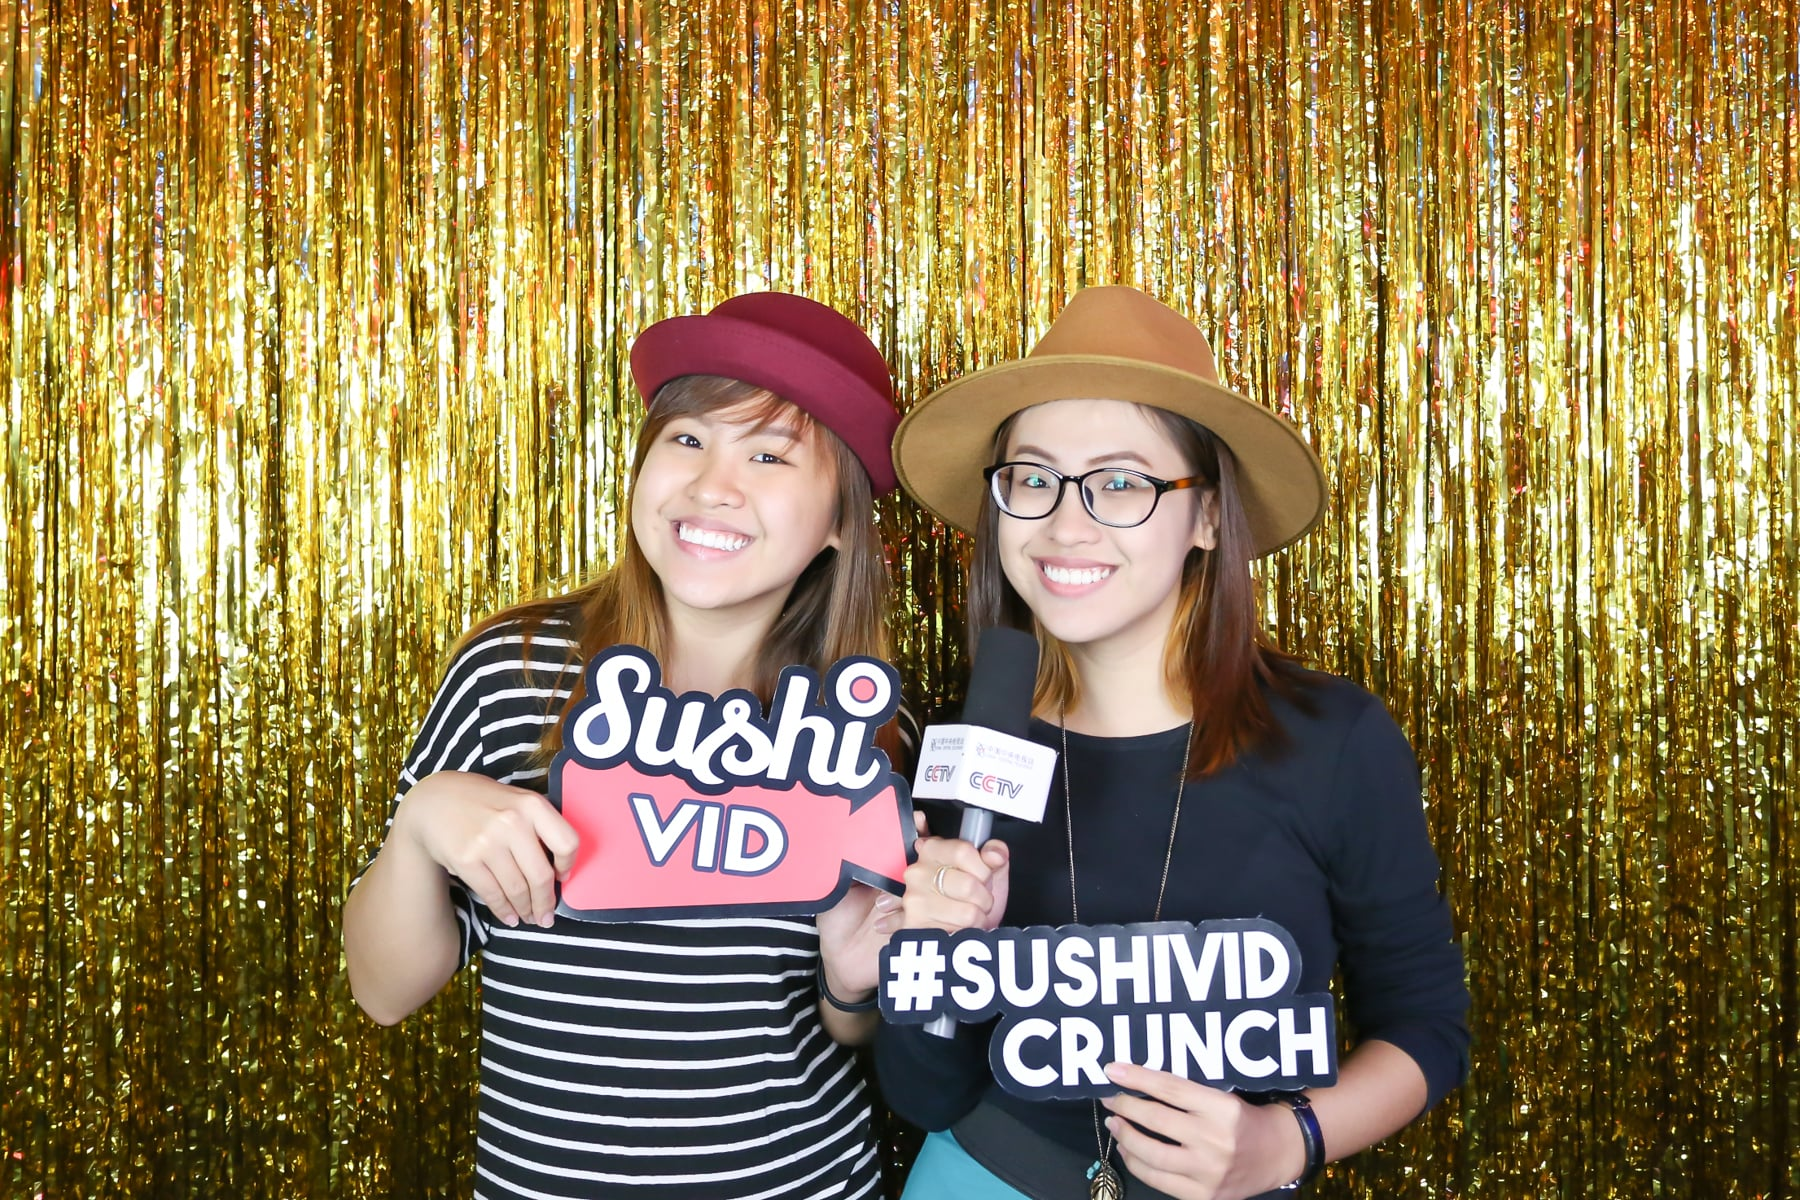 Sushivid+crunch+tagbooth+35